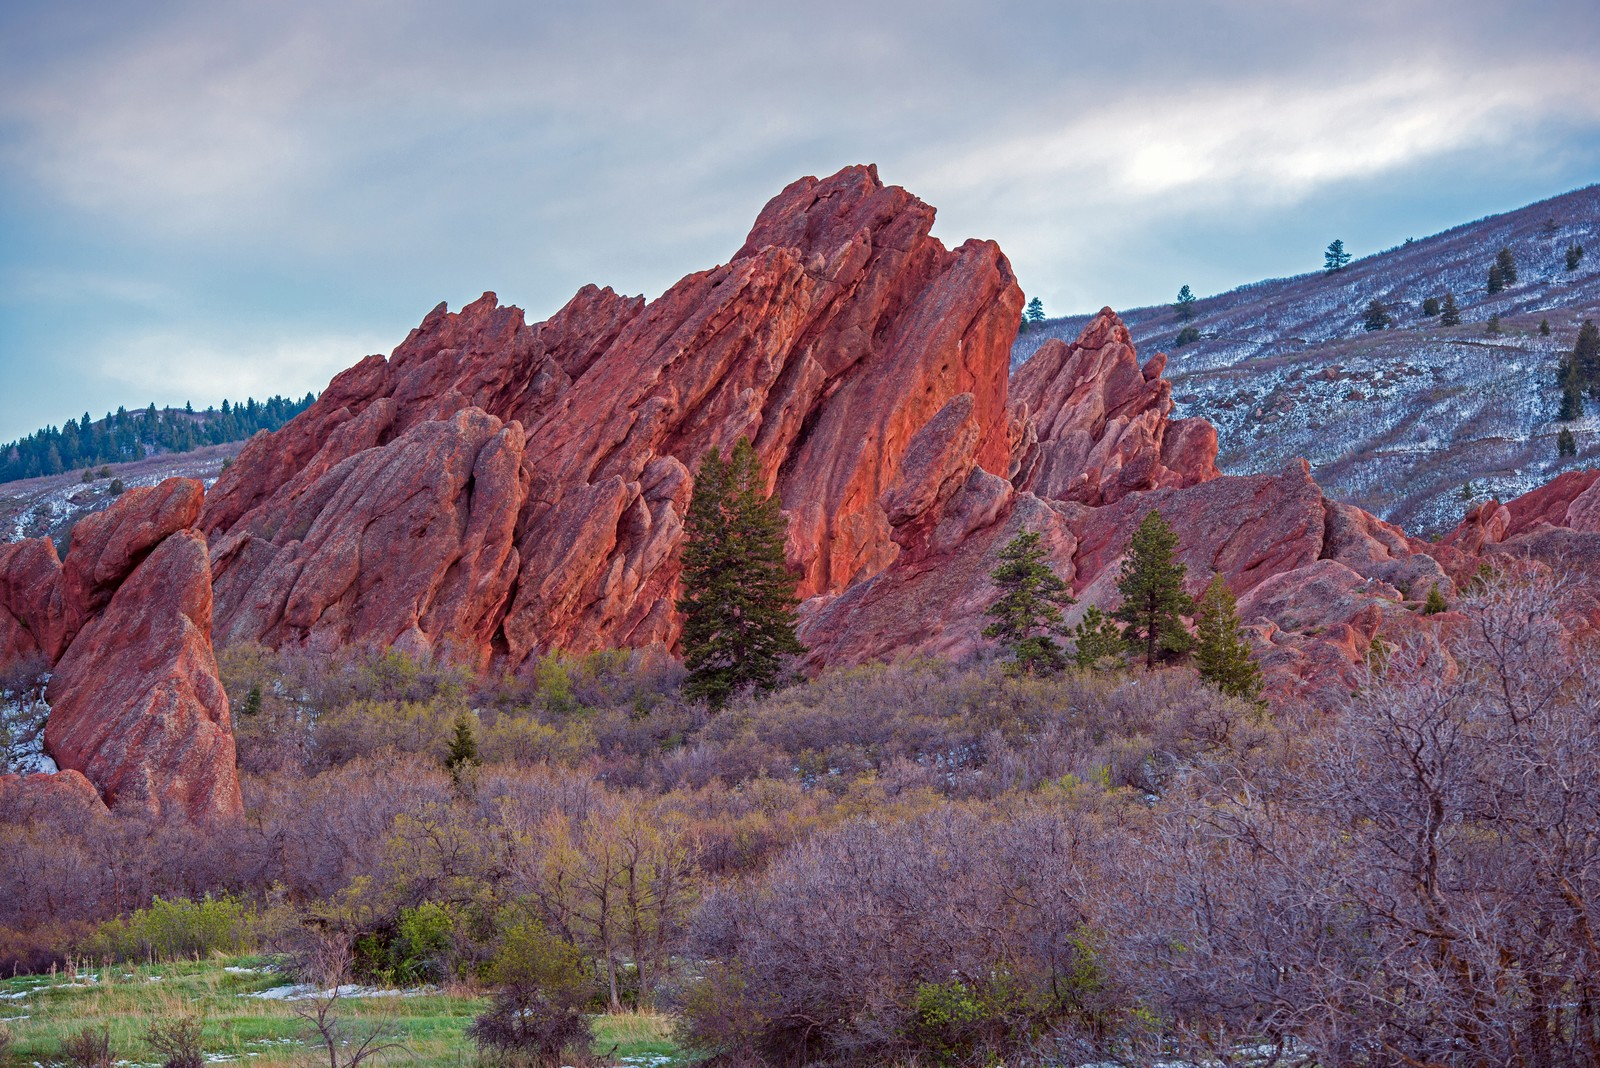 Red rocks at with wild shrubs at the base and scattered pines dotting the landscape, foothills in the background